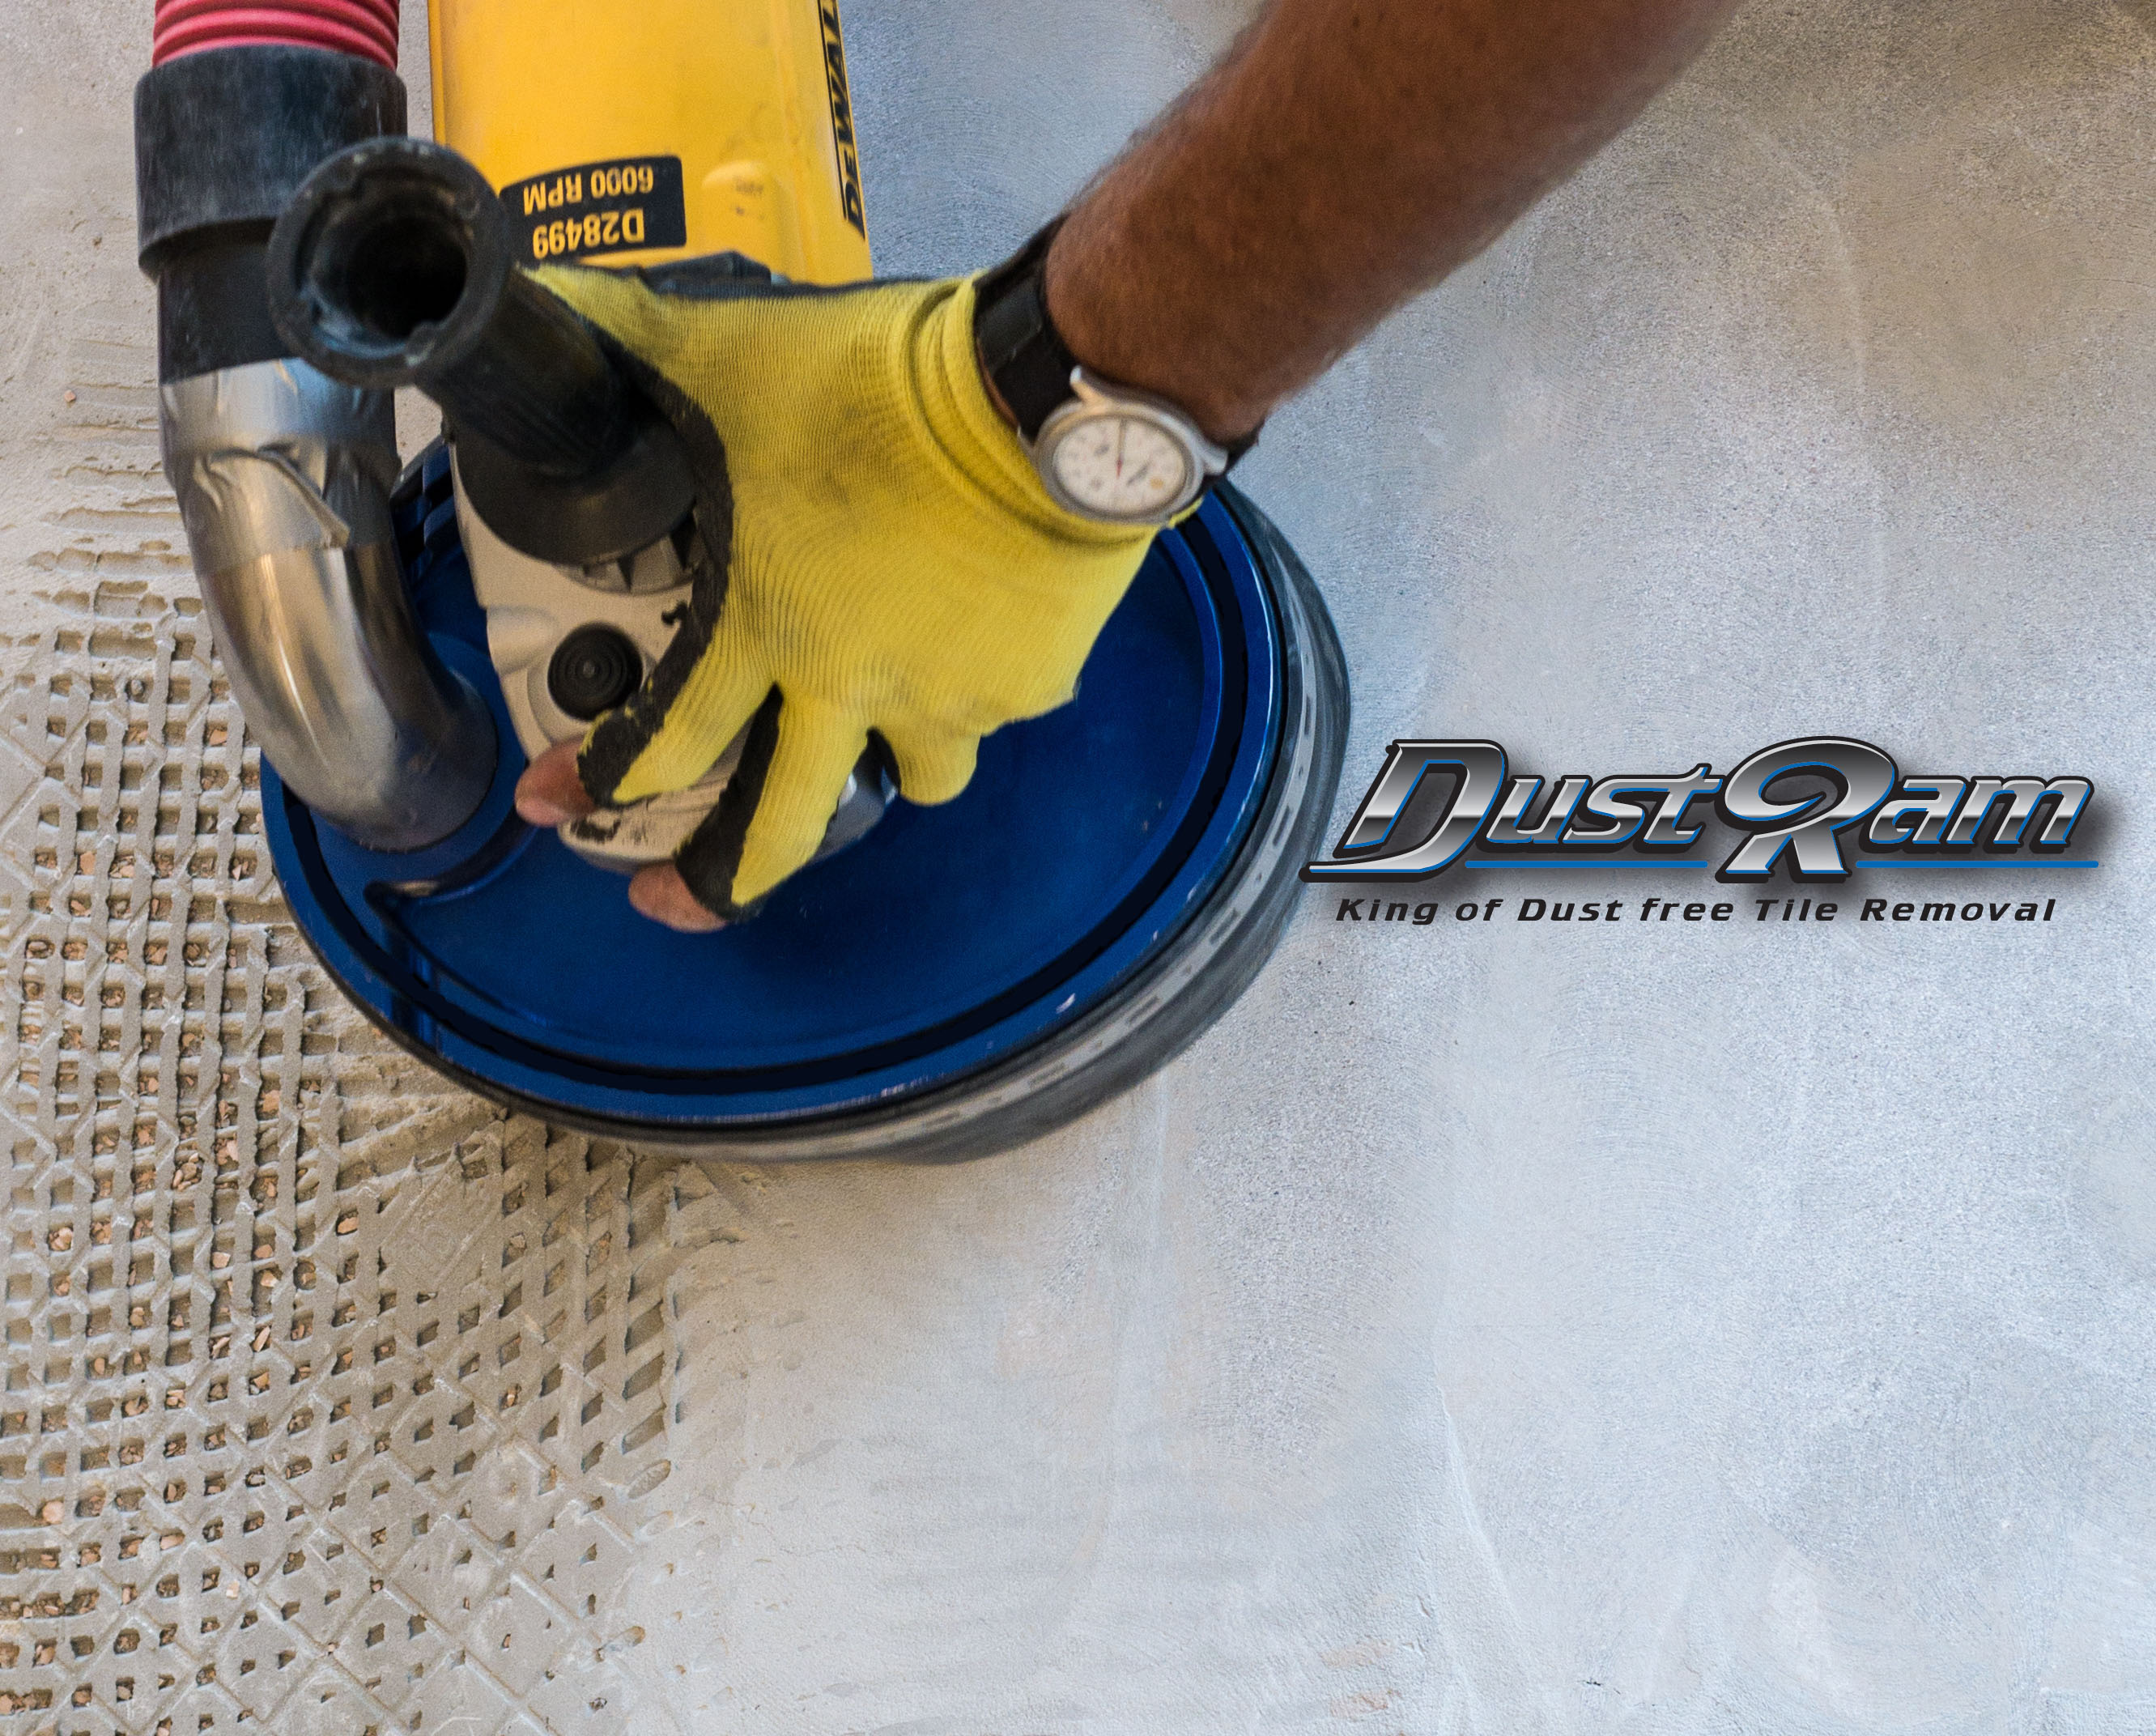 How to Remove Thinset Dust Free: A DustRam Guide